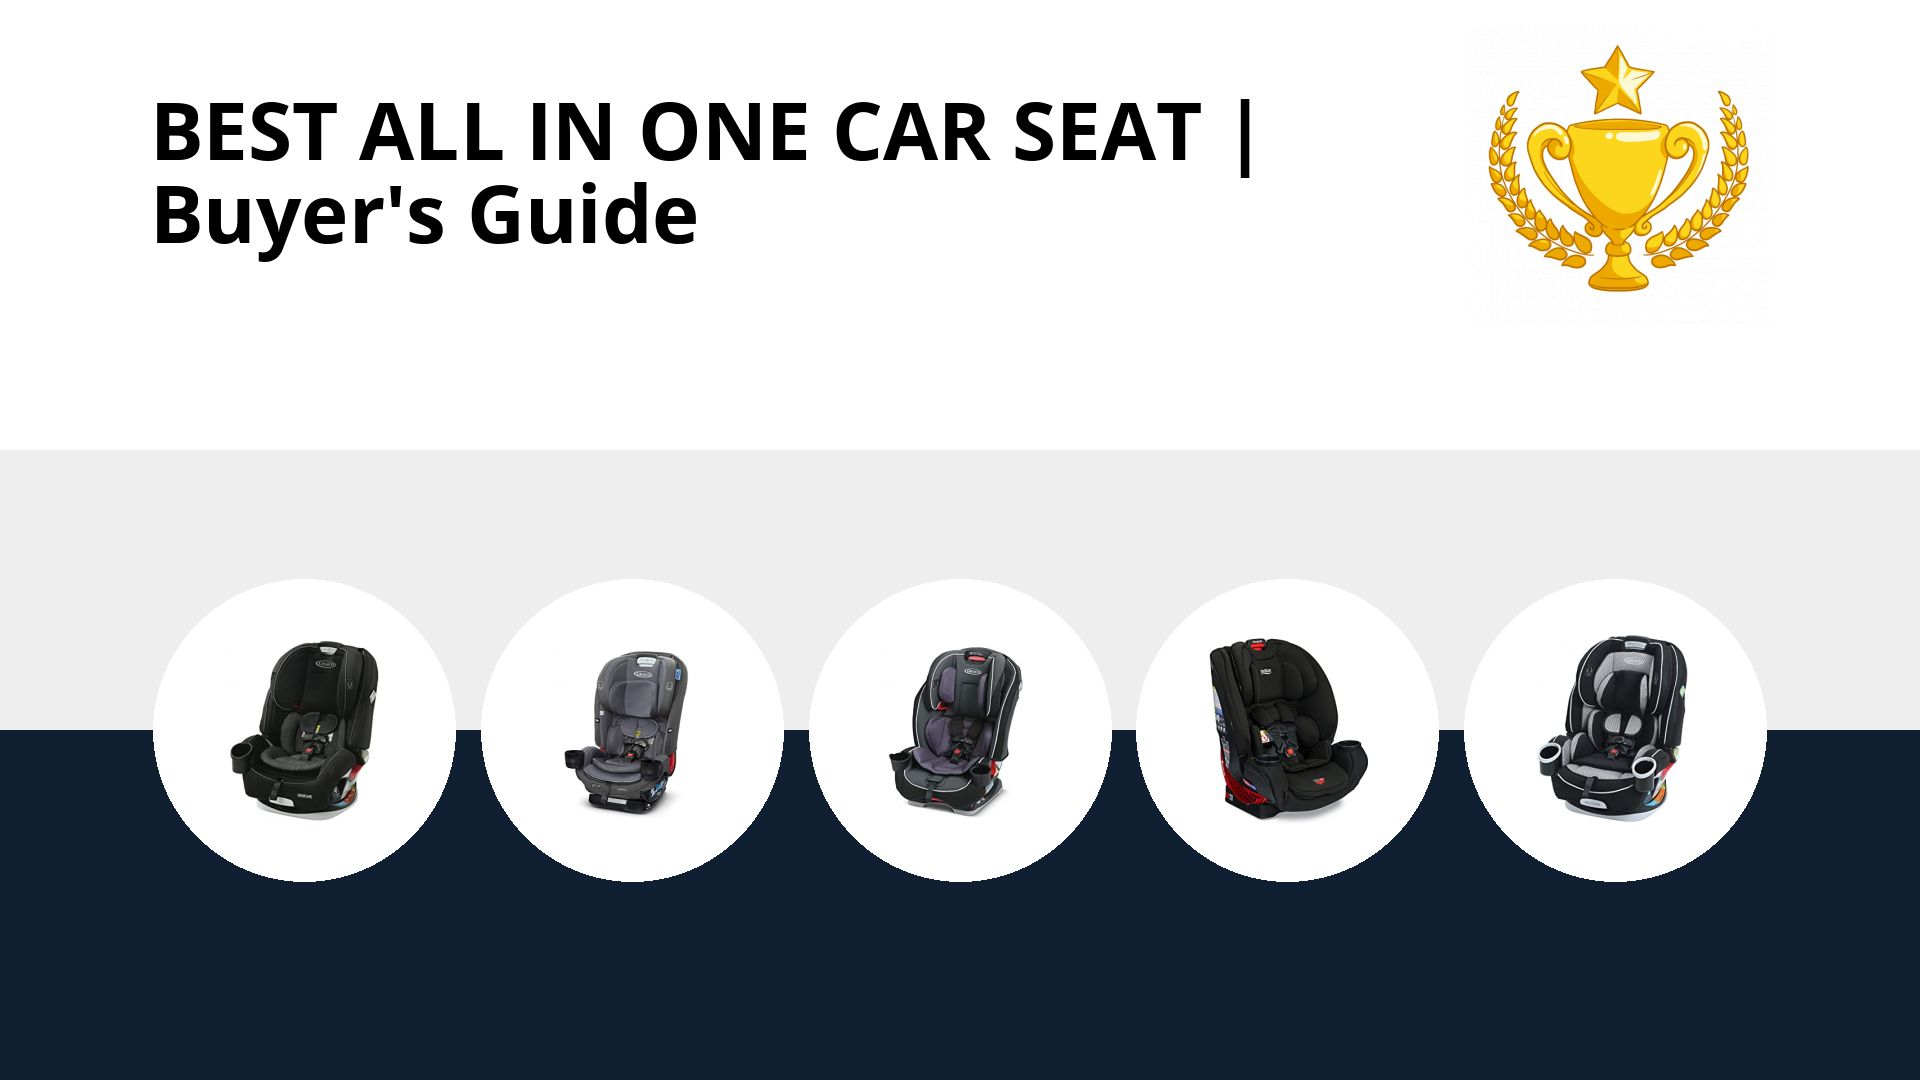 Best All In One Car Seat: image